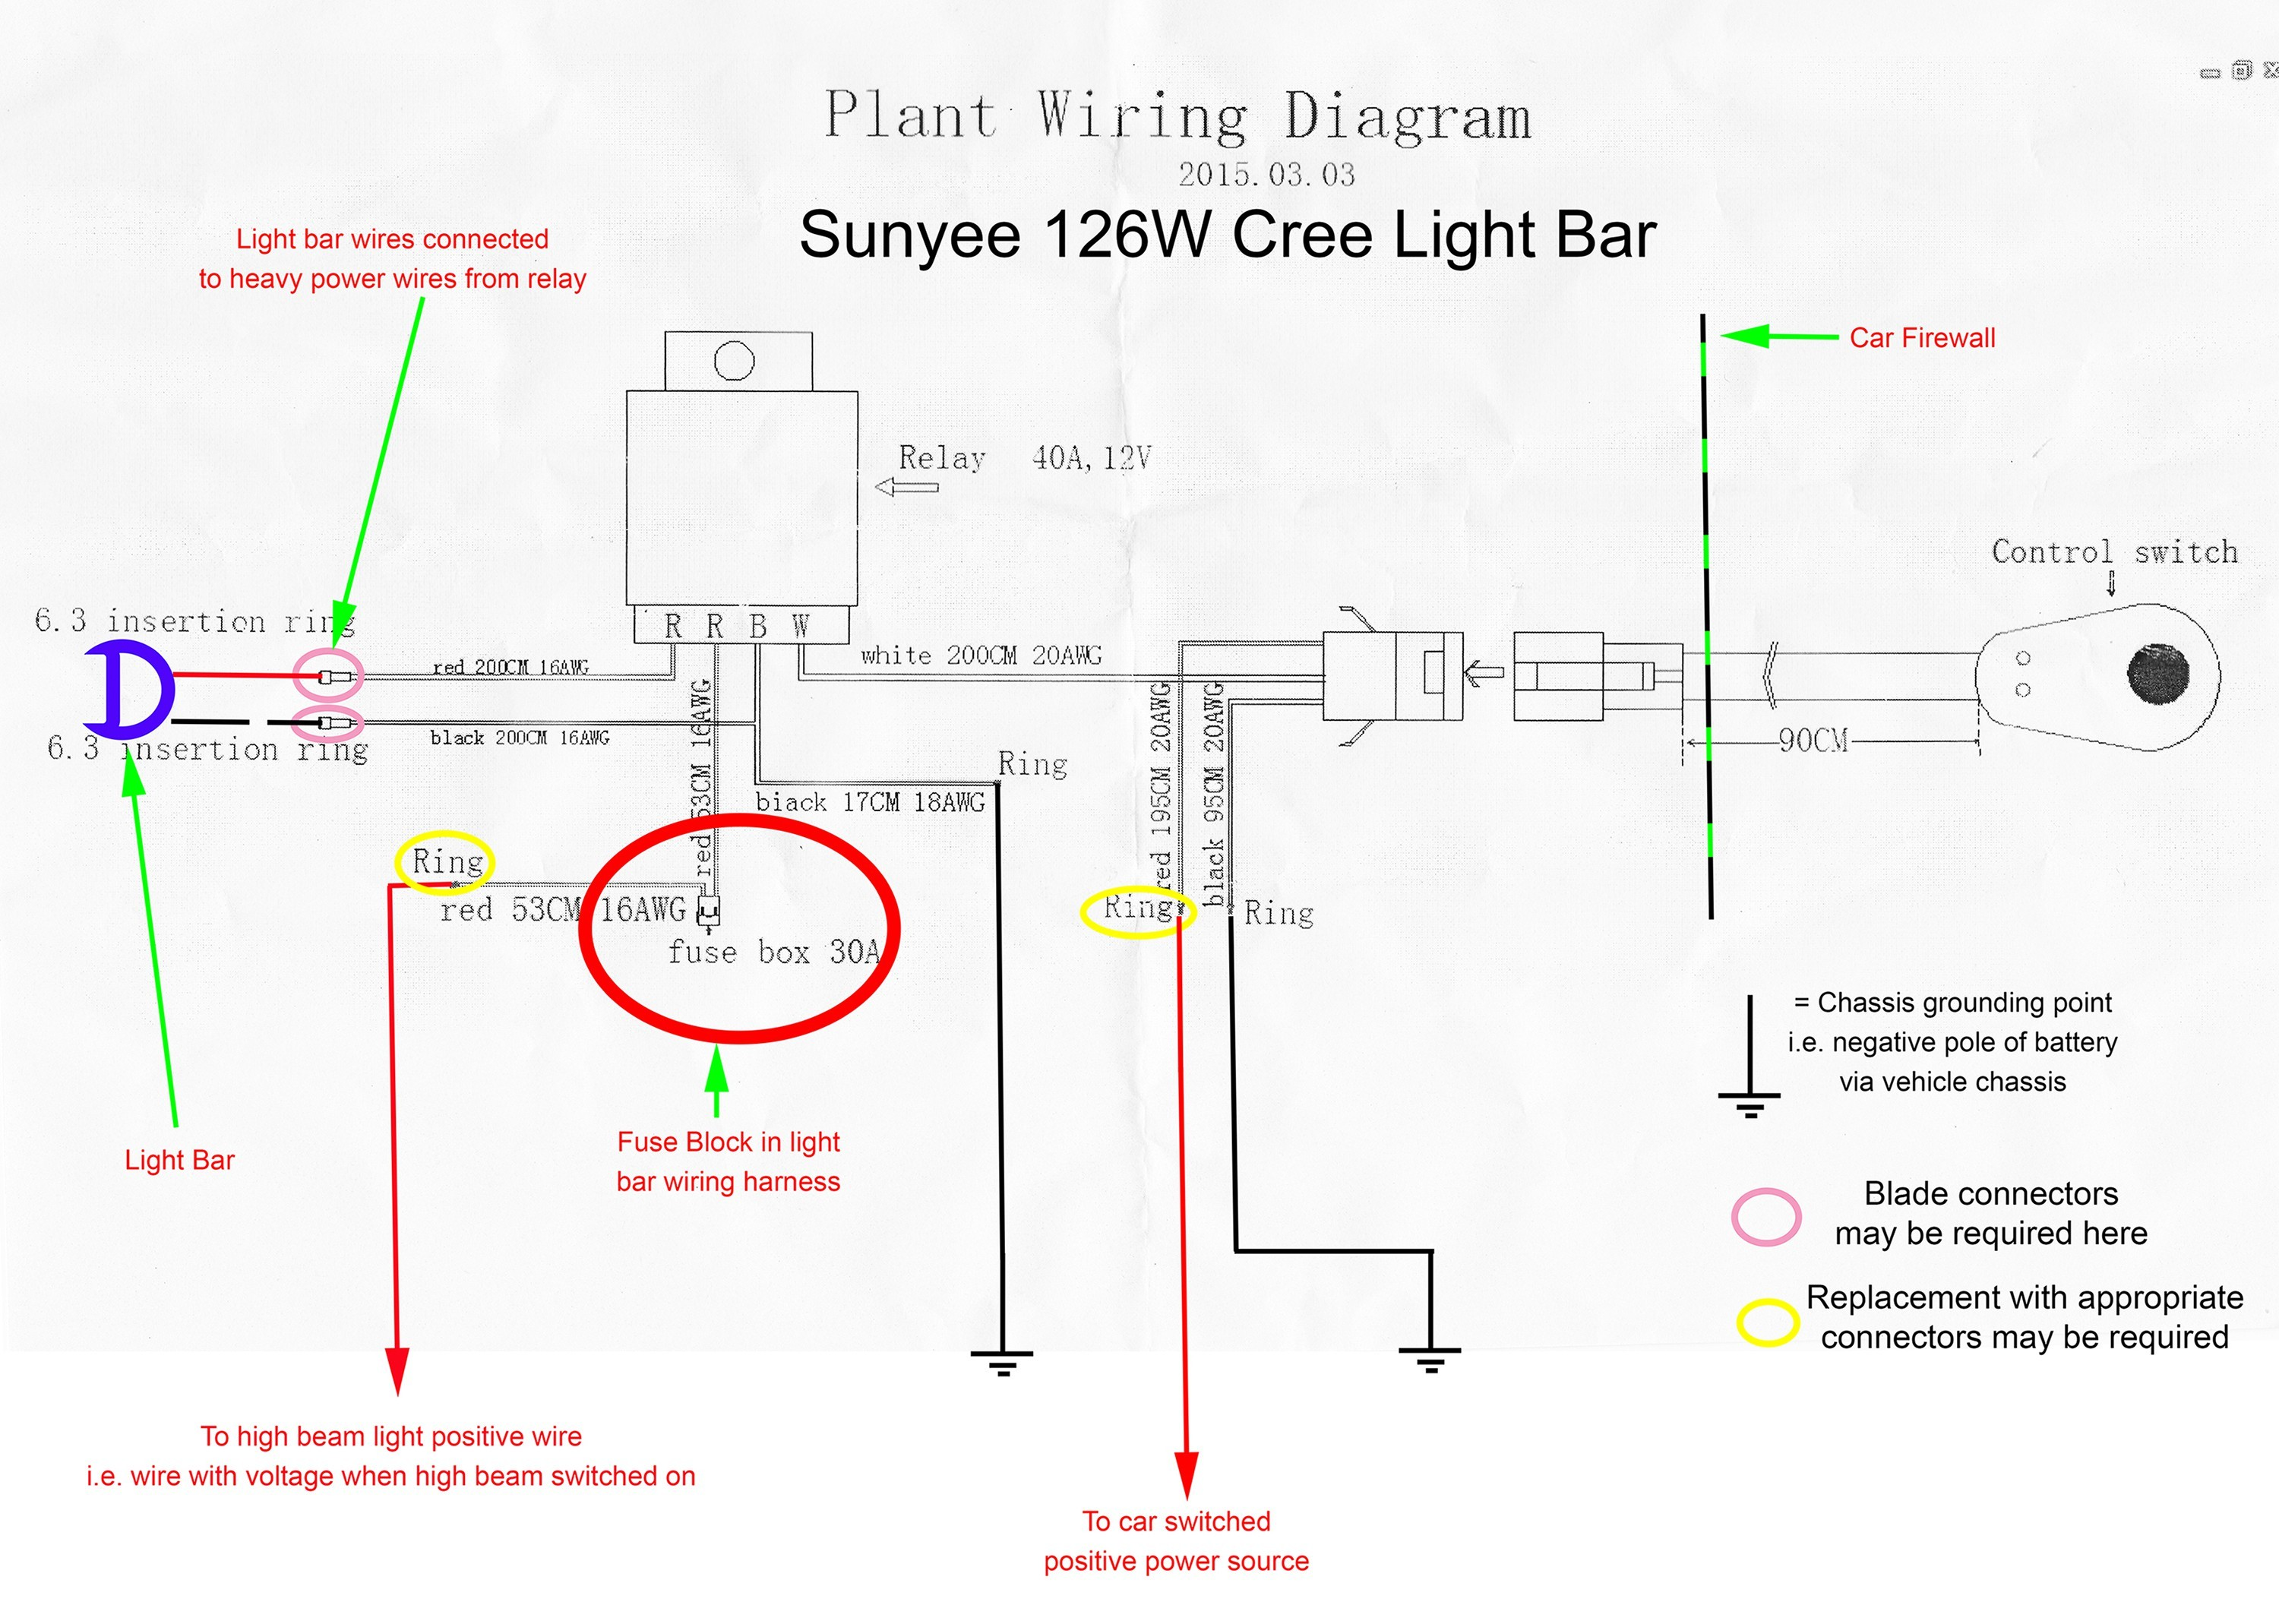 3 Wire Tail Light Wiring Diagram Luxury Install Sunyee Cree 126w Light Bar Sg Ii forester